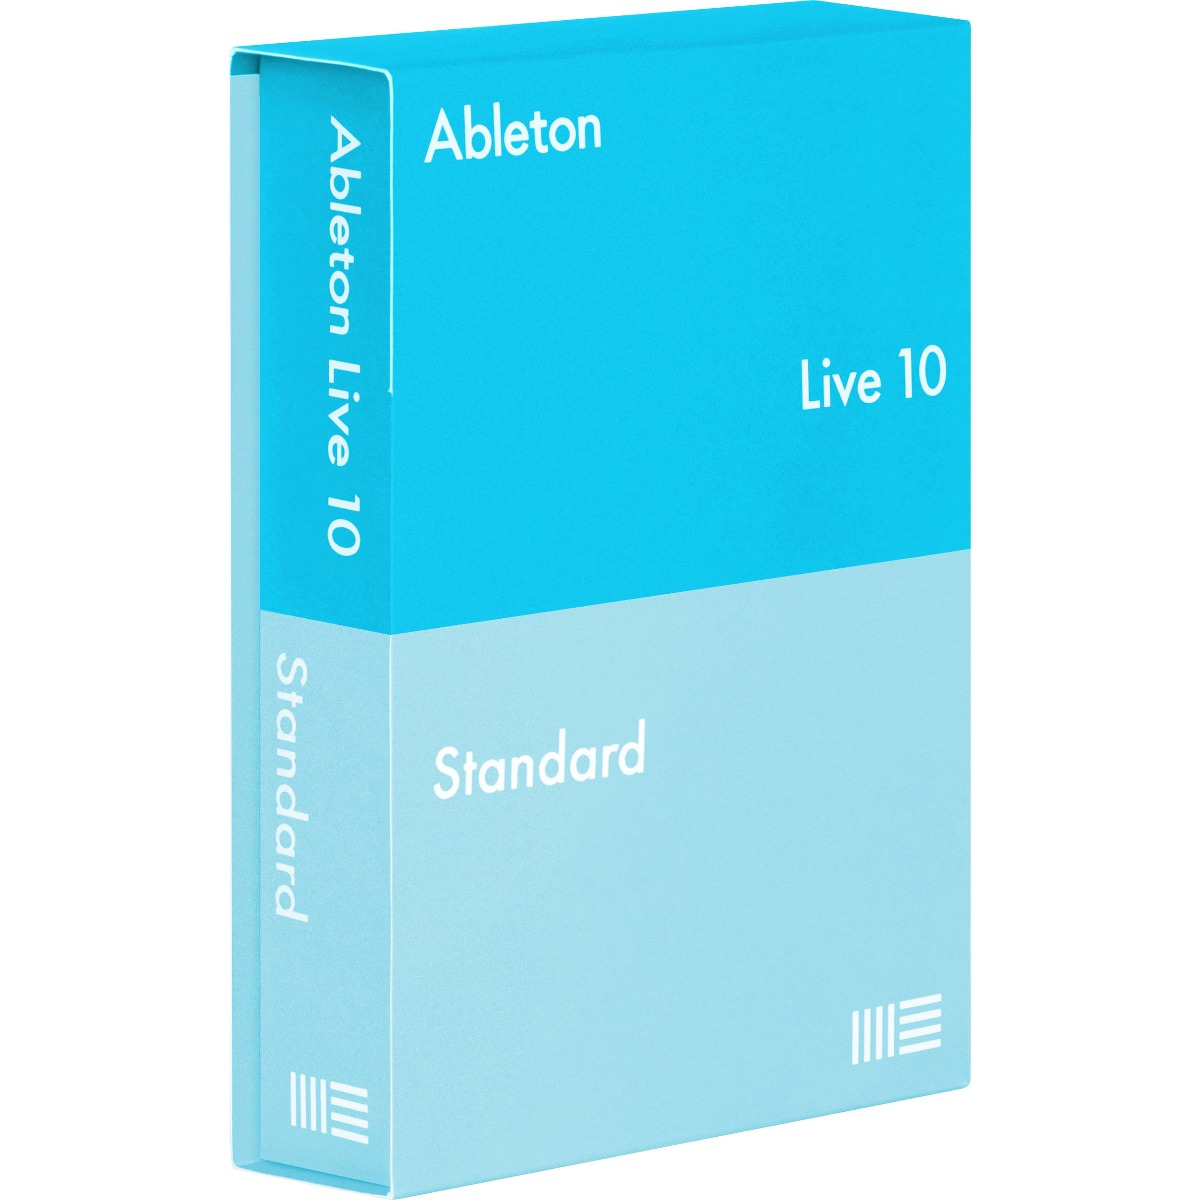 Ableton Live 10 Standard software